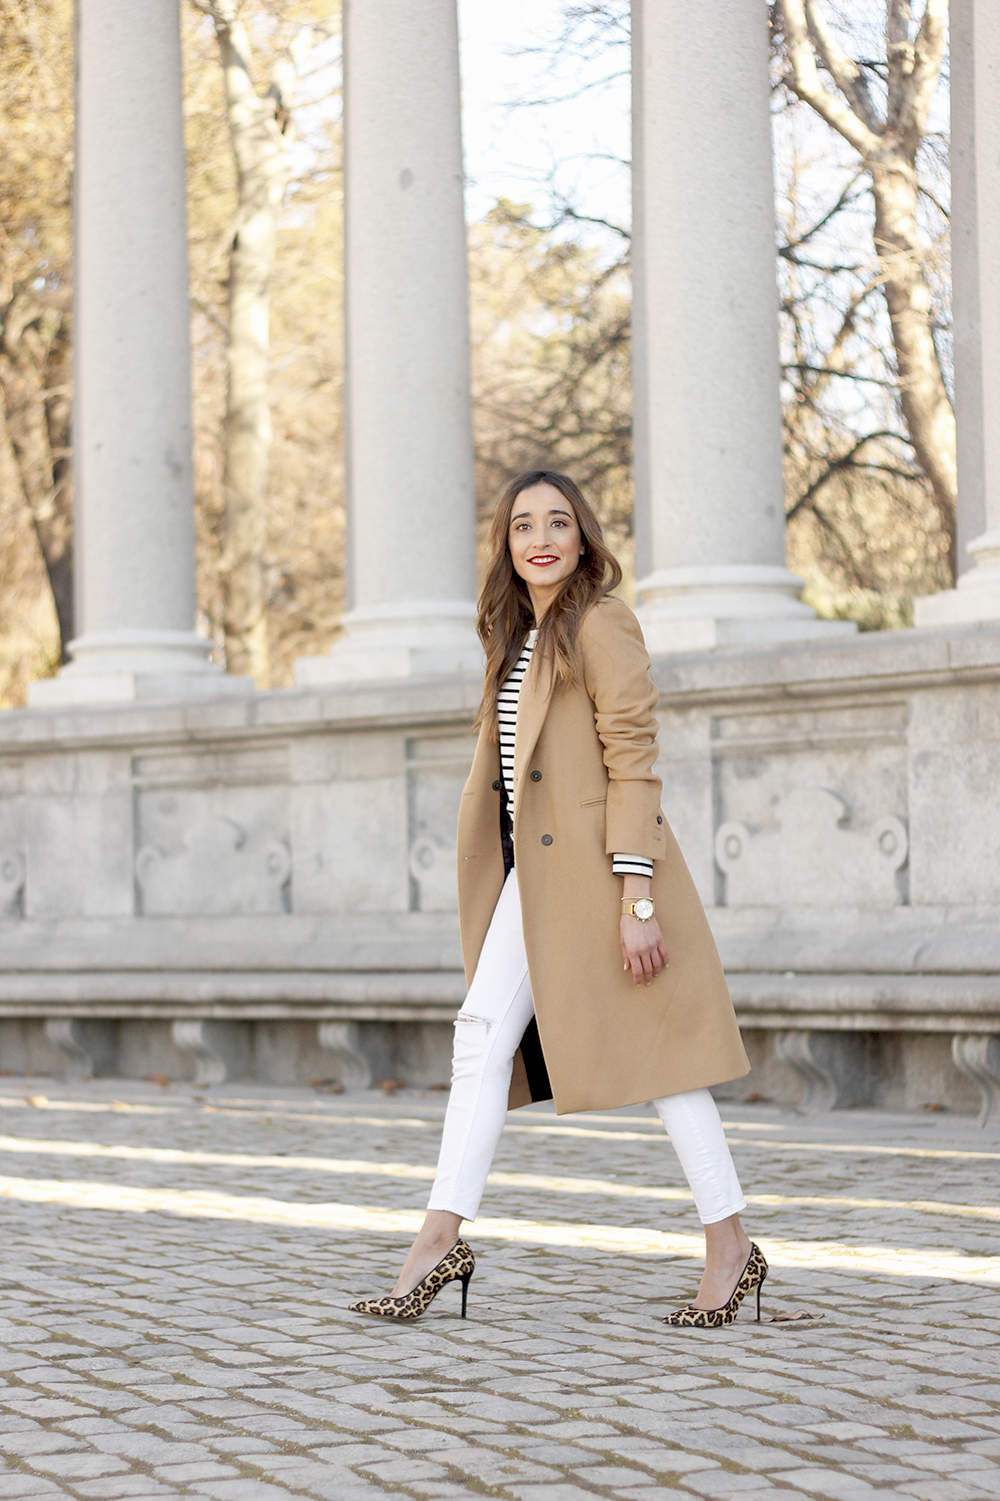 beige coat ripped jeans givenchy bag gucci belt street style outfit 201910